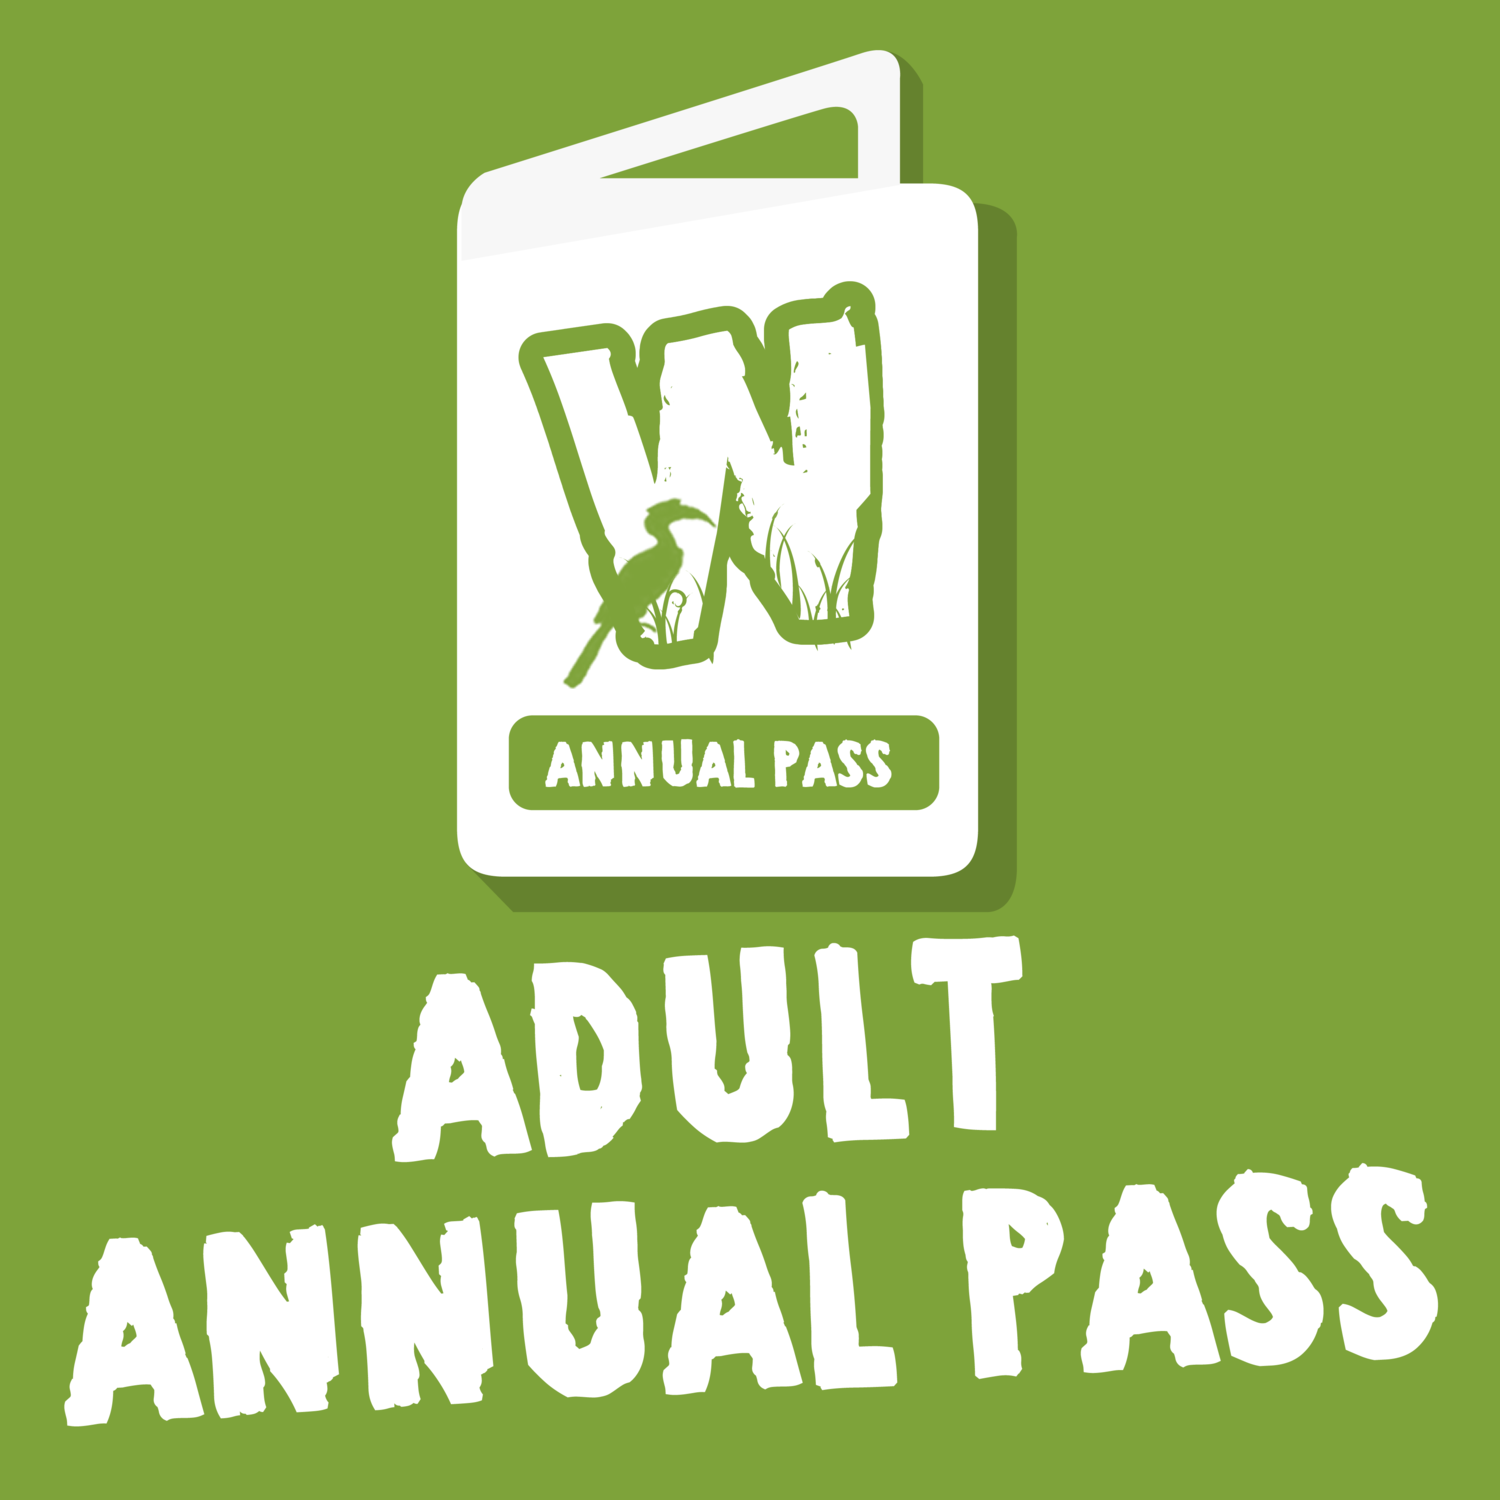 Wild Zoological Park X1 Adult ANNUAL PASS